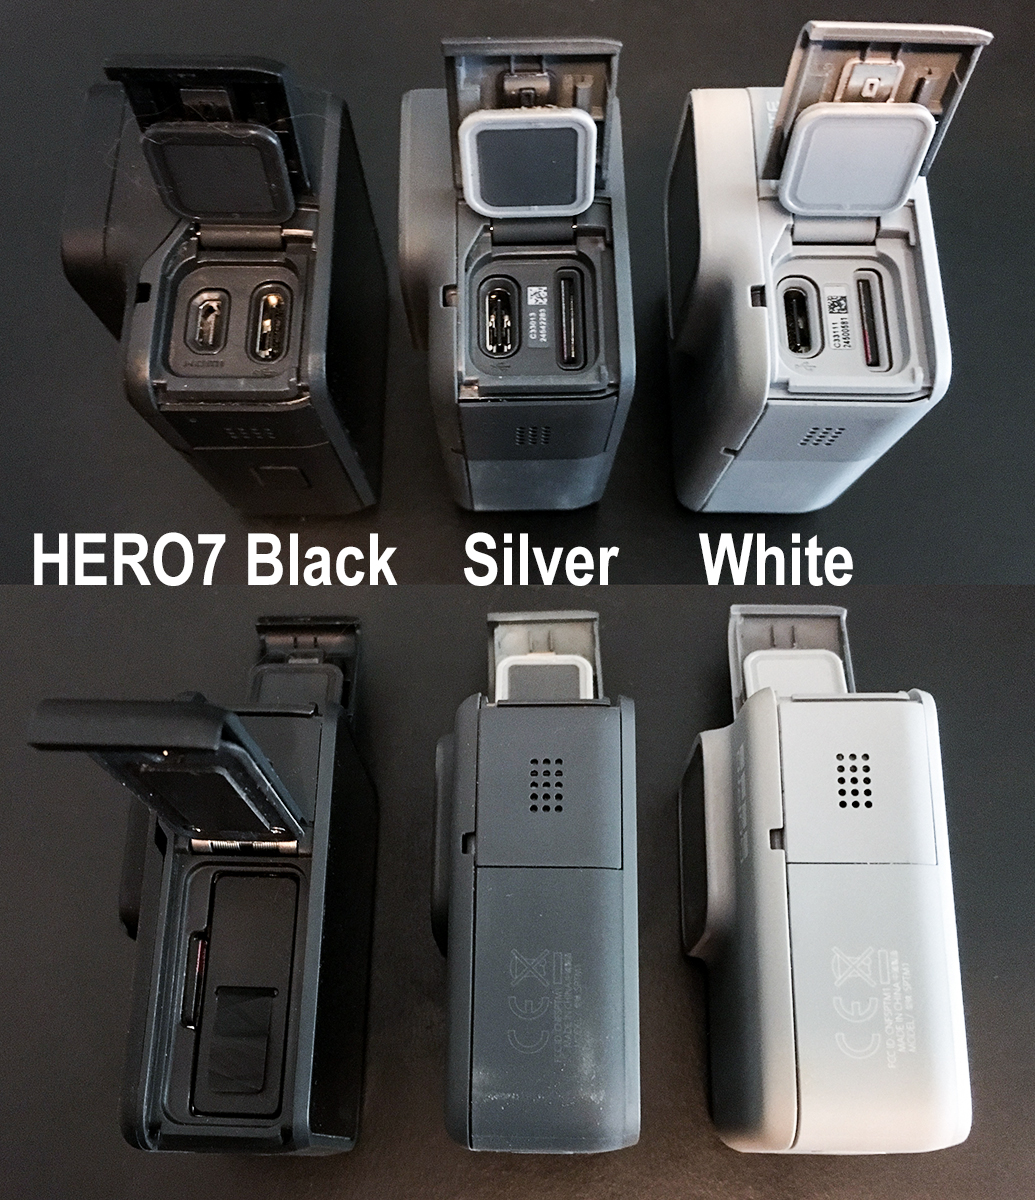 GoPro HERO7 Black, Silver and White Comparisons by Jeff